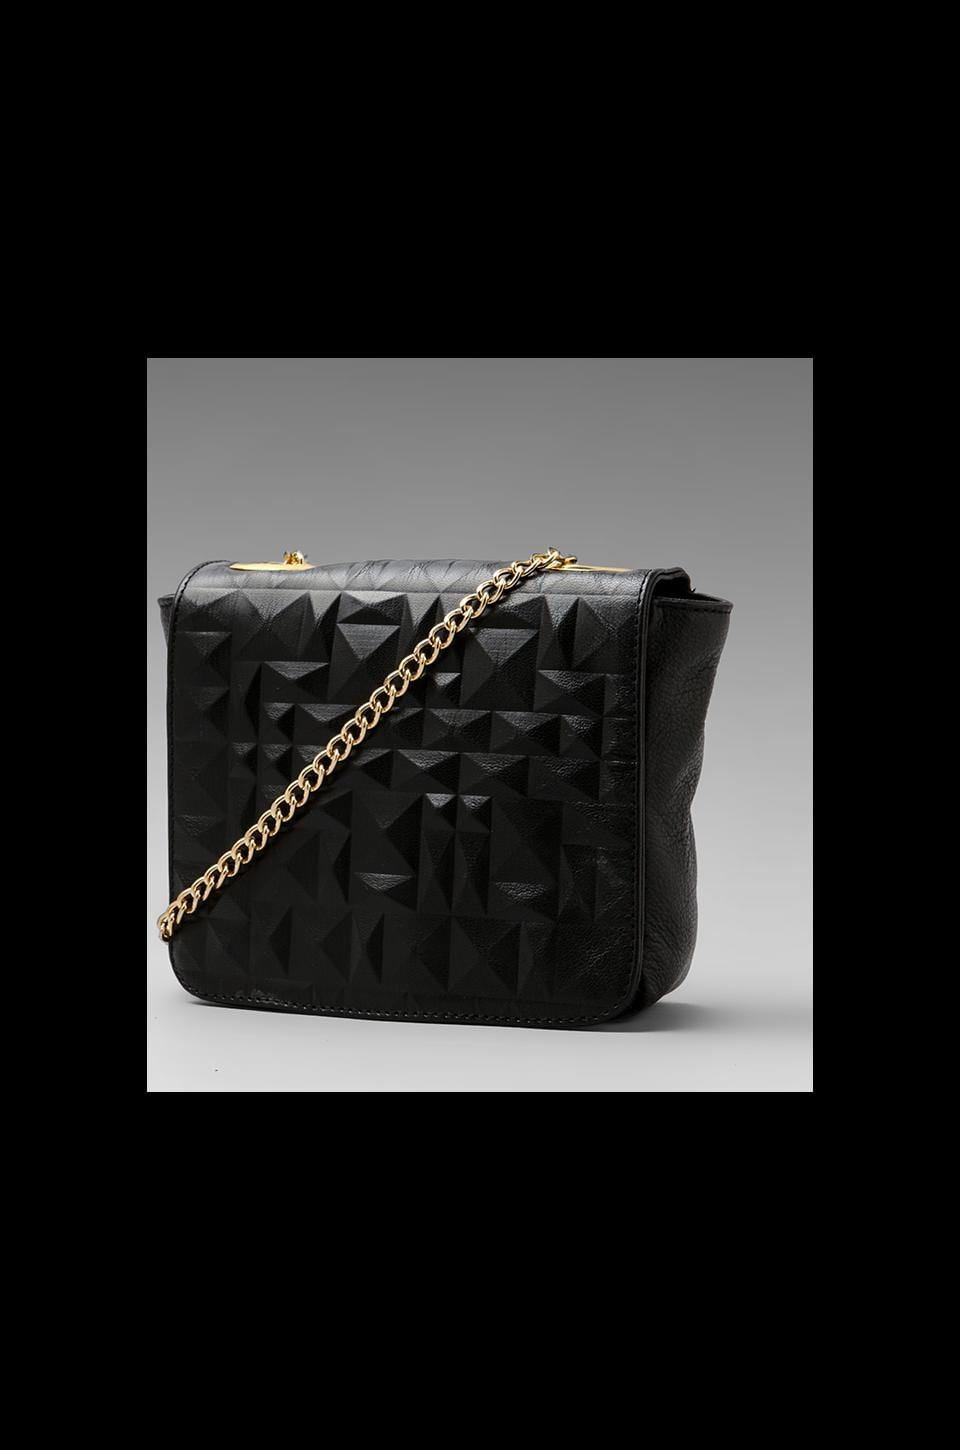 CC Skye The Bizzaro Shoulder Bag in Black